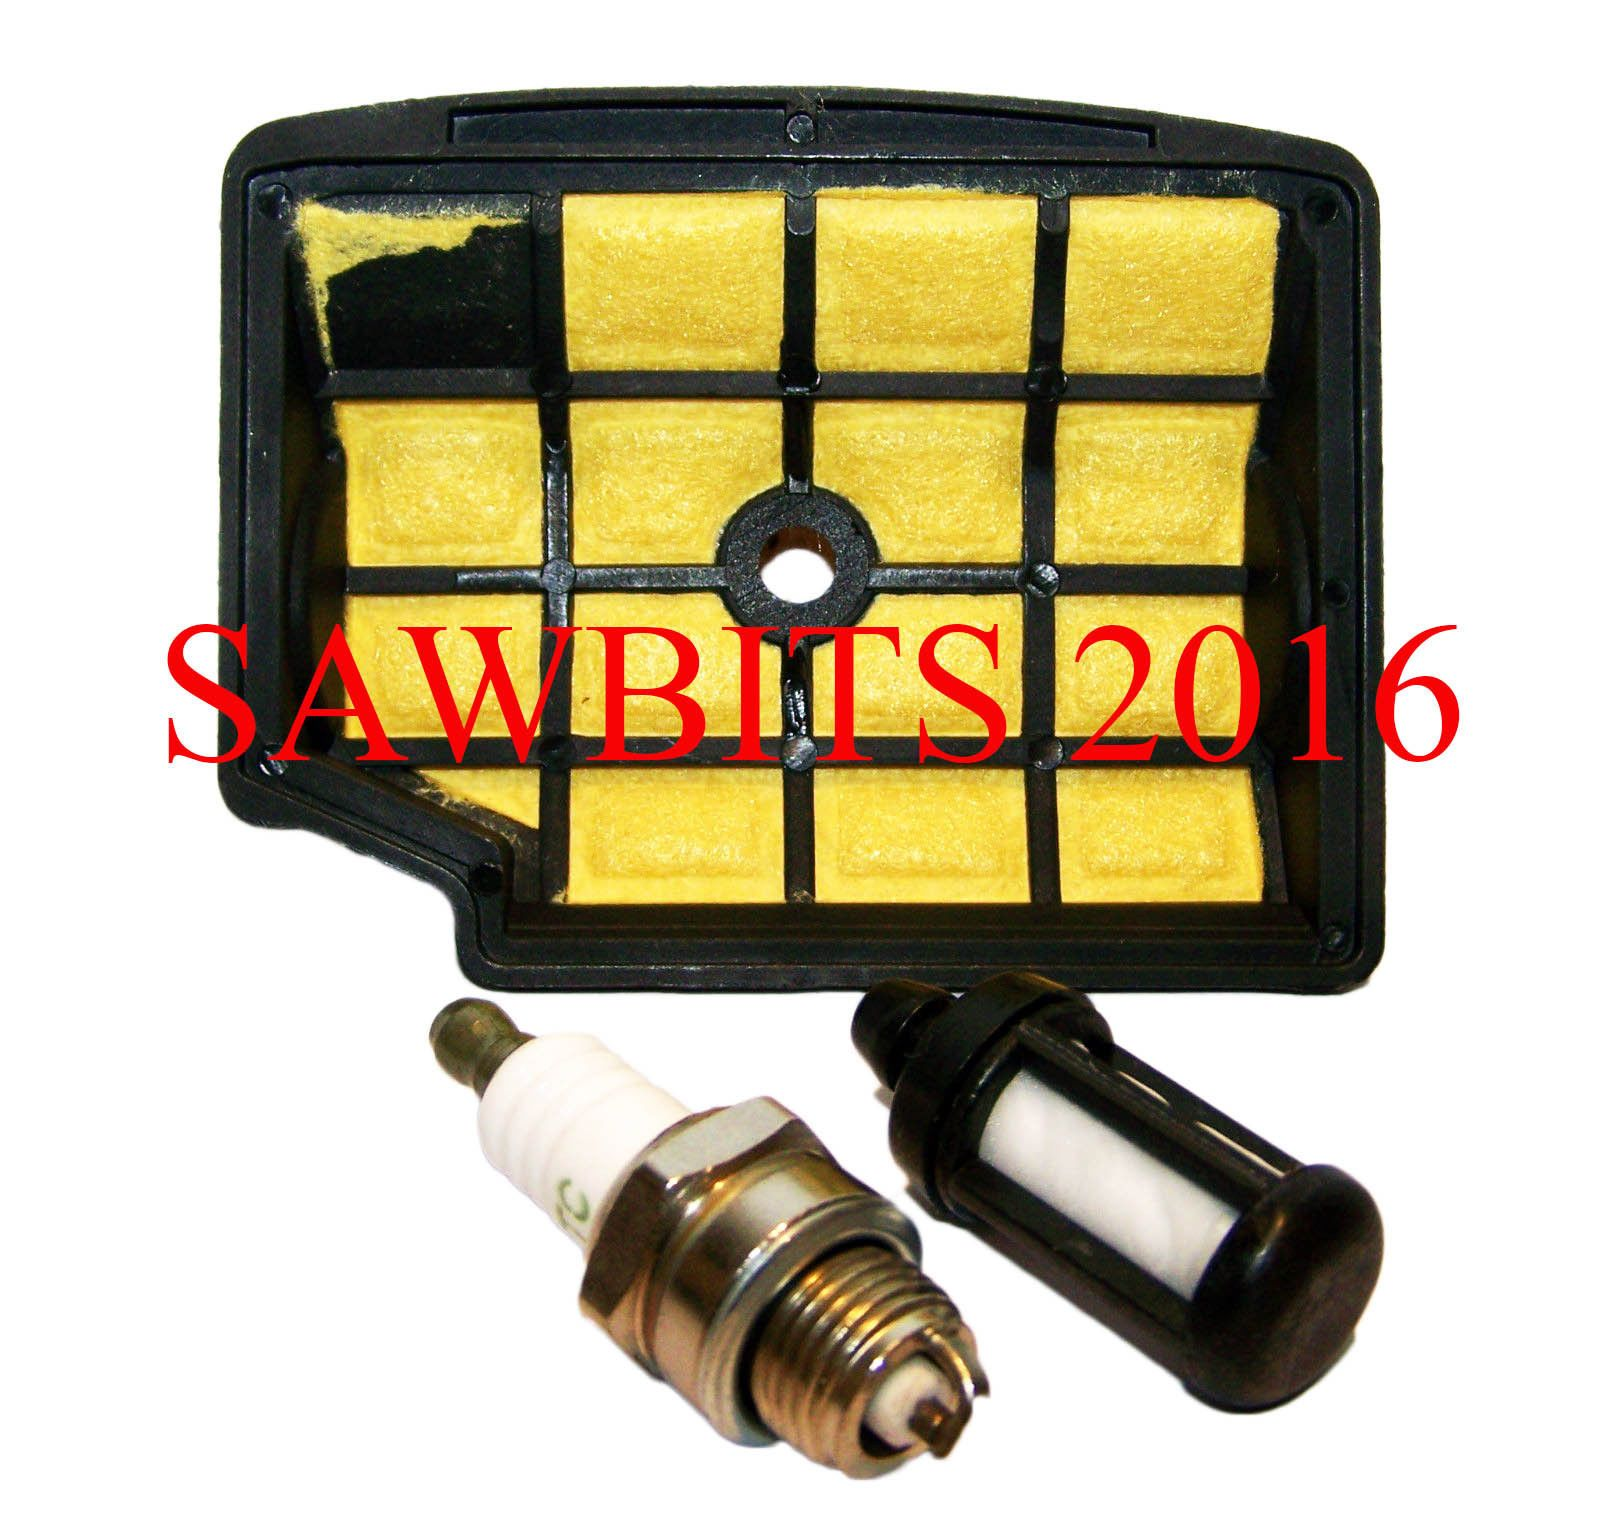 hight resolution of compatible stihl 020t ms200 ms200t air filter fuel filter spark plug service